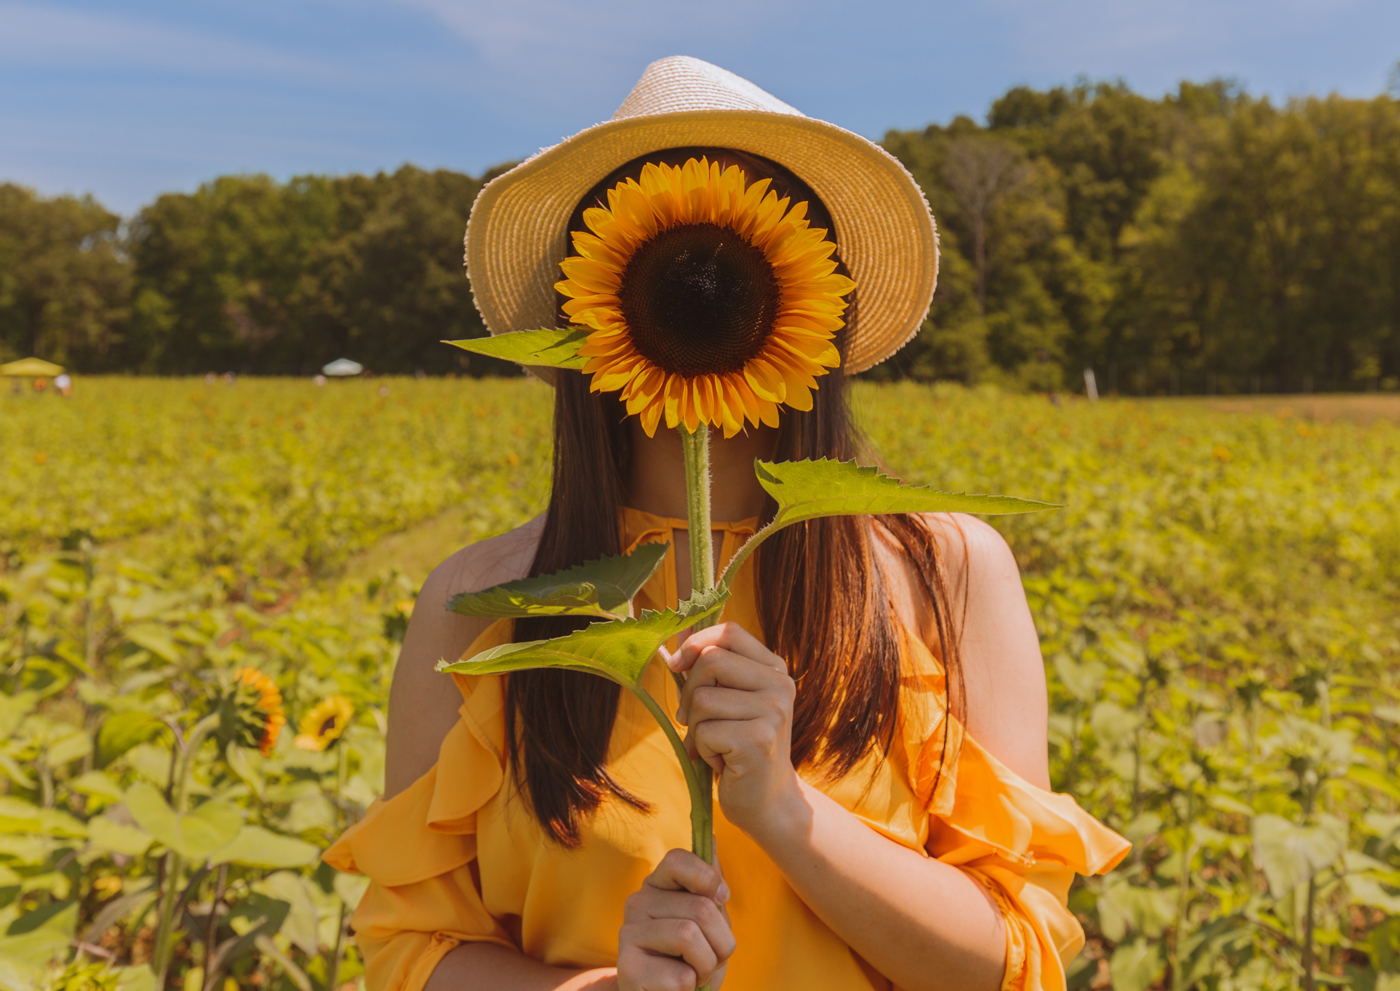 yourway_yourwhy_woman_yellow_sunflower